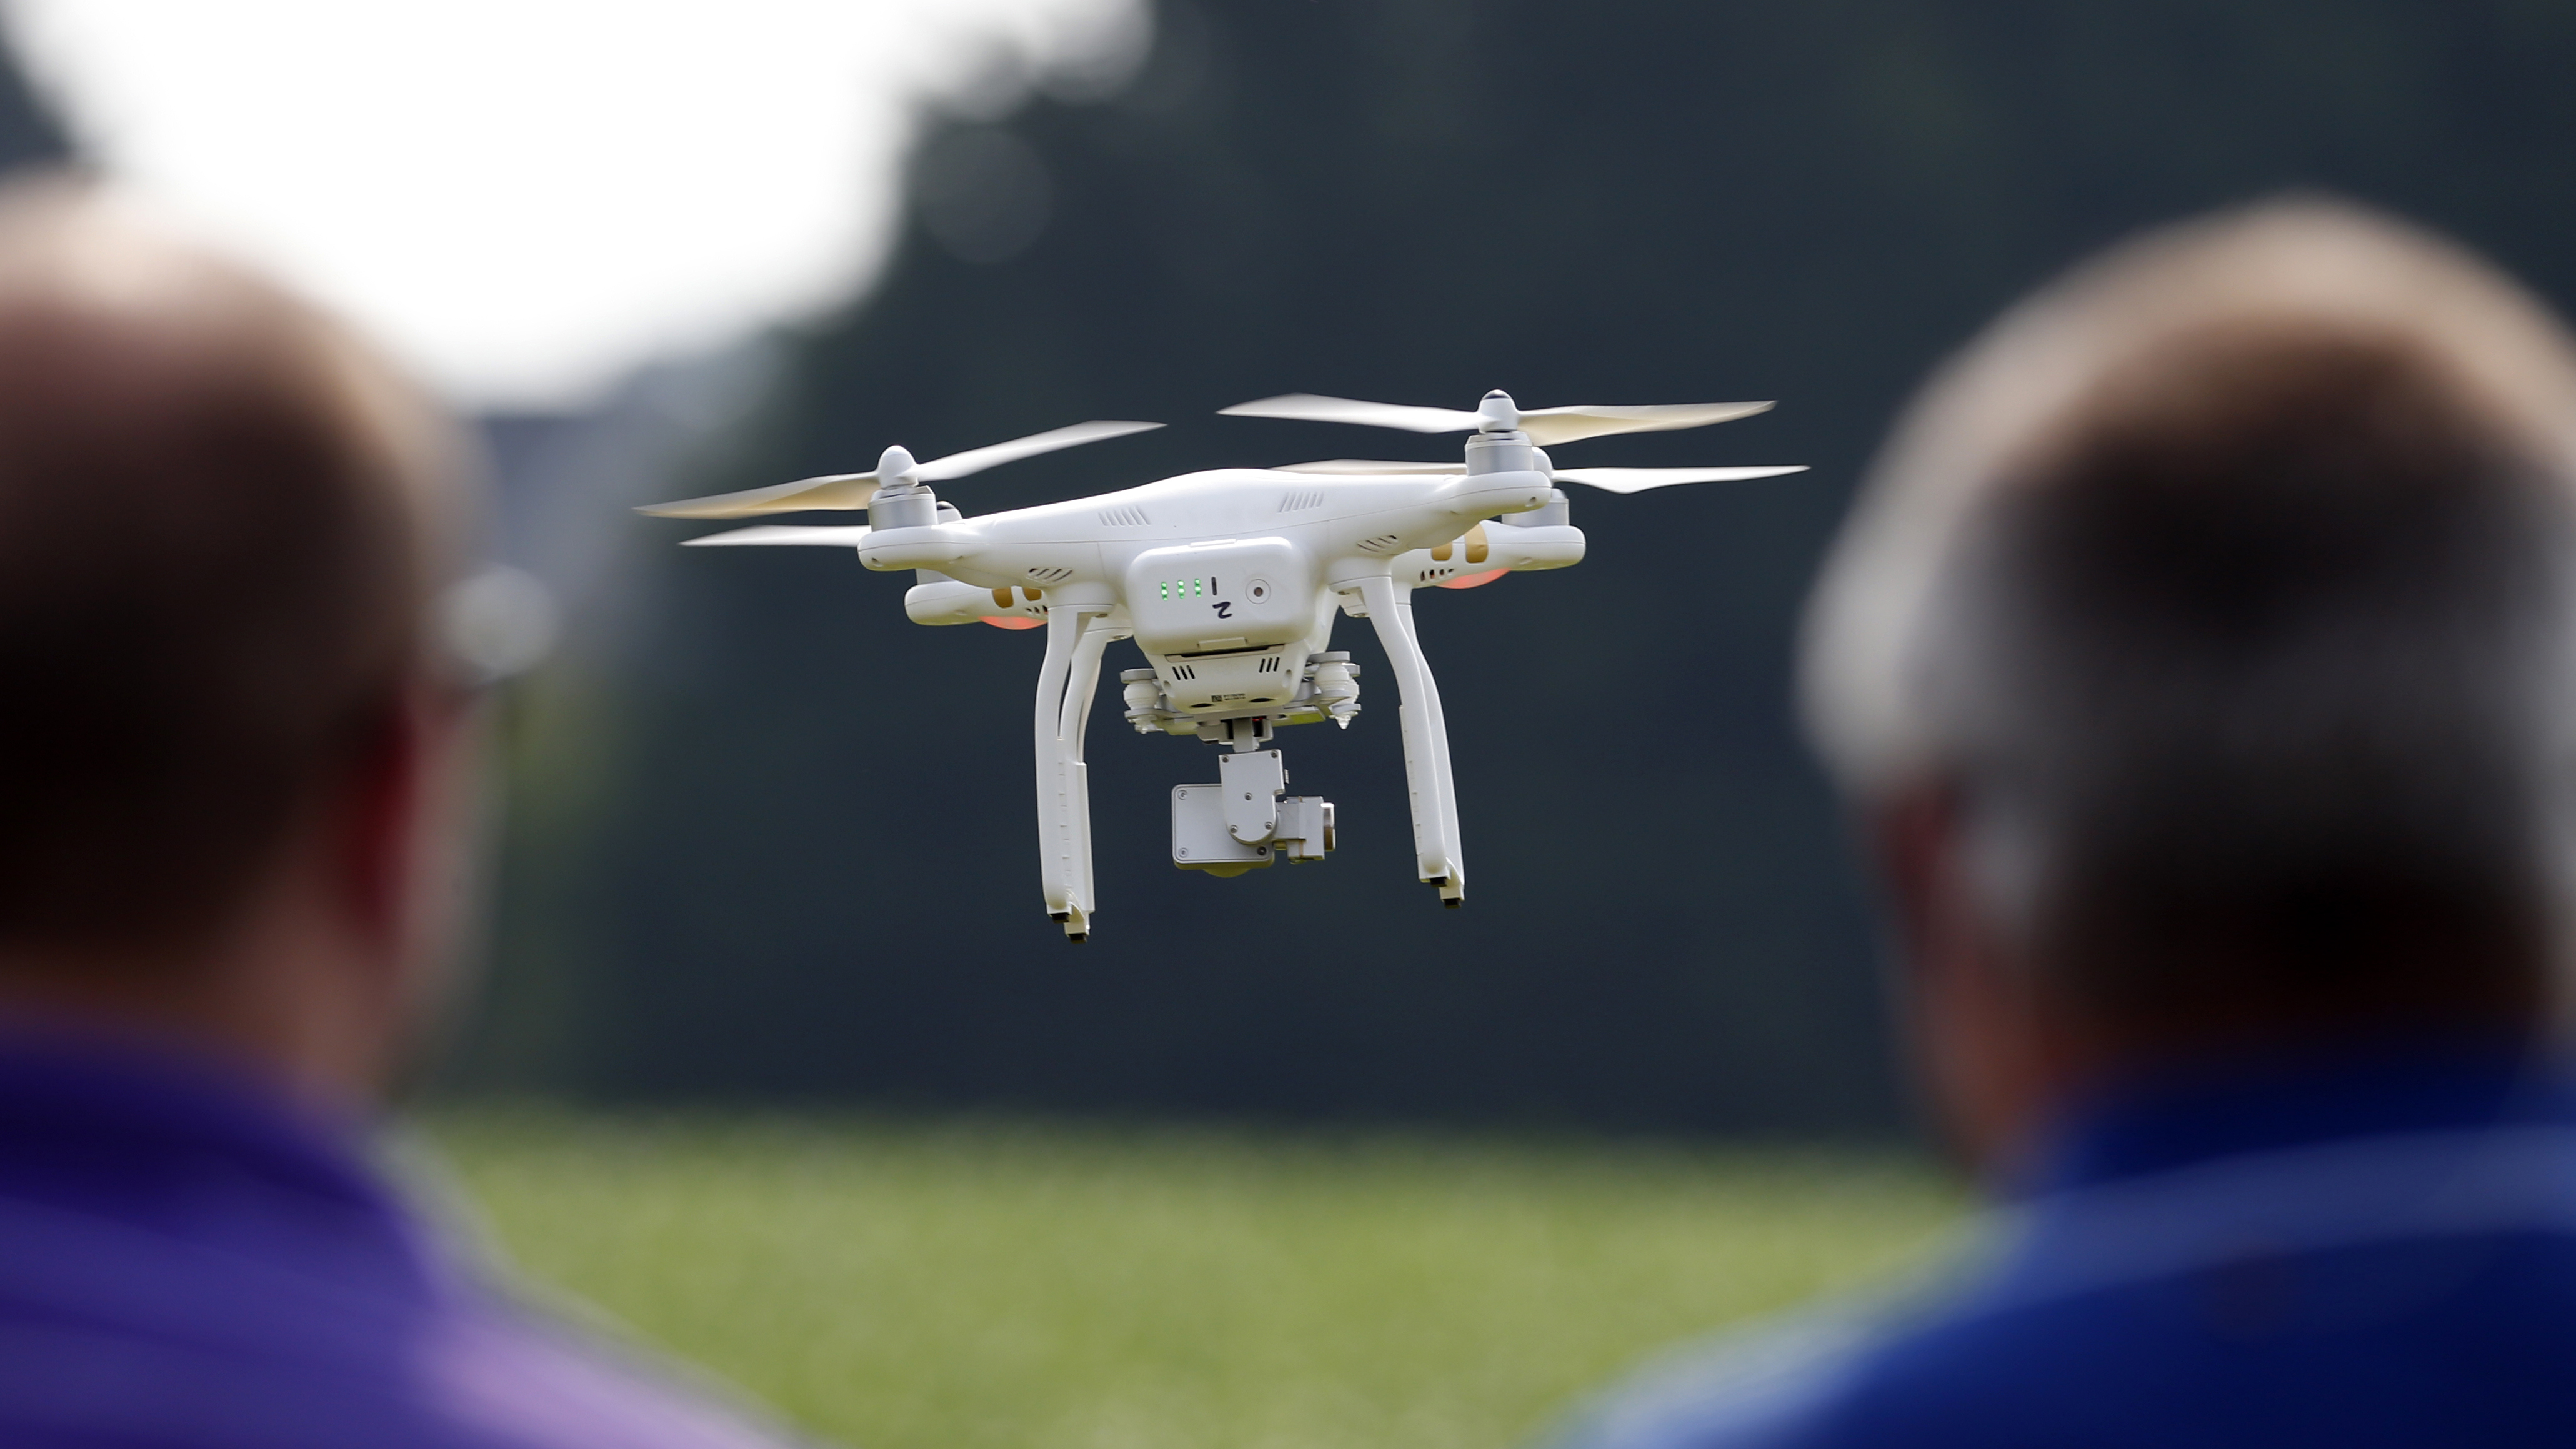 A DJI Phantom 3 drone is flown by Matthew Creger, left, marketing director for Intelligent UAS, as he talks with Chip Bowling, from Newburg, Md., president of the National Corn Growers, during a drone demonstration at a farm and winery, on potential use for board members of the National Corn Growers, Thursday, June 11, 2015 in Cordova, Md. (AP Photo/Alex Brandon)